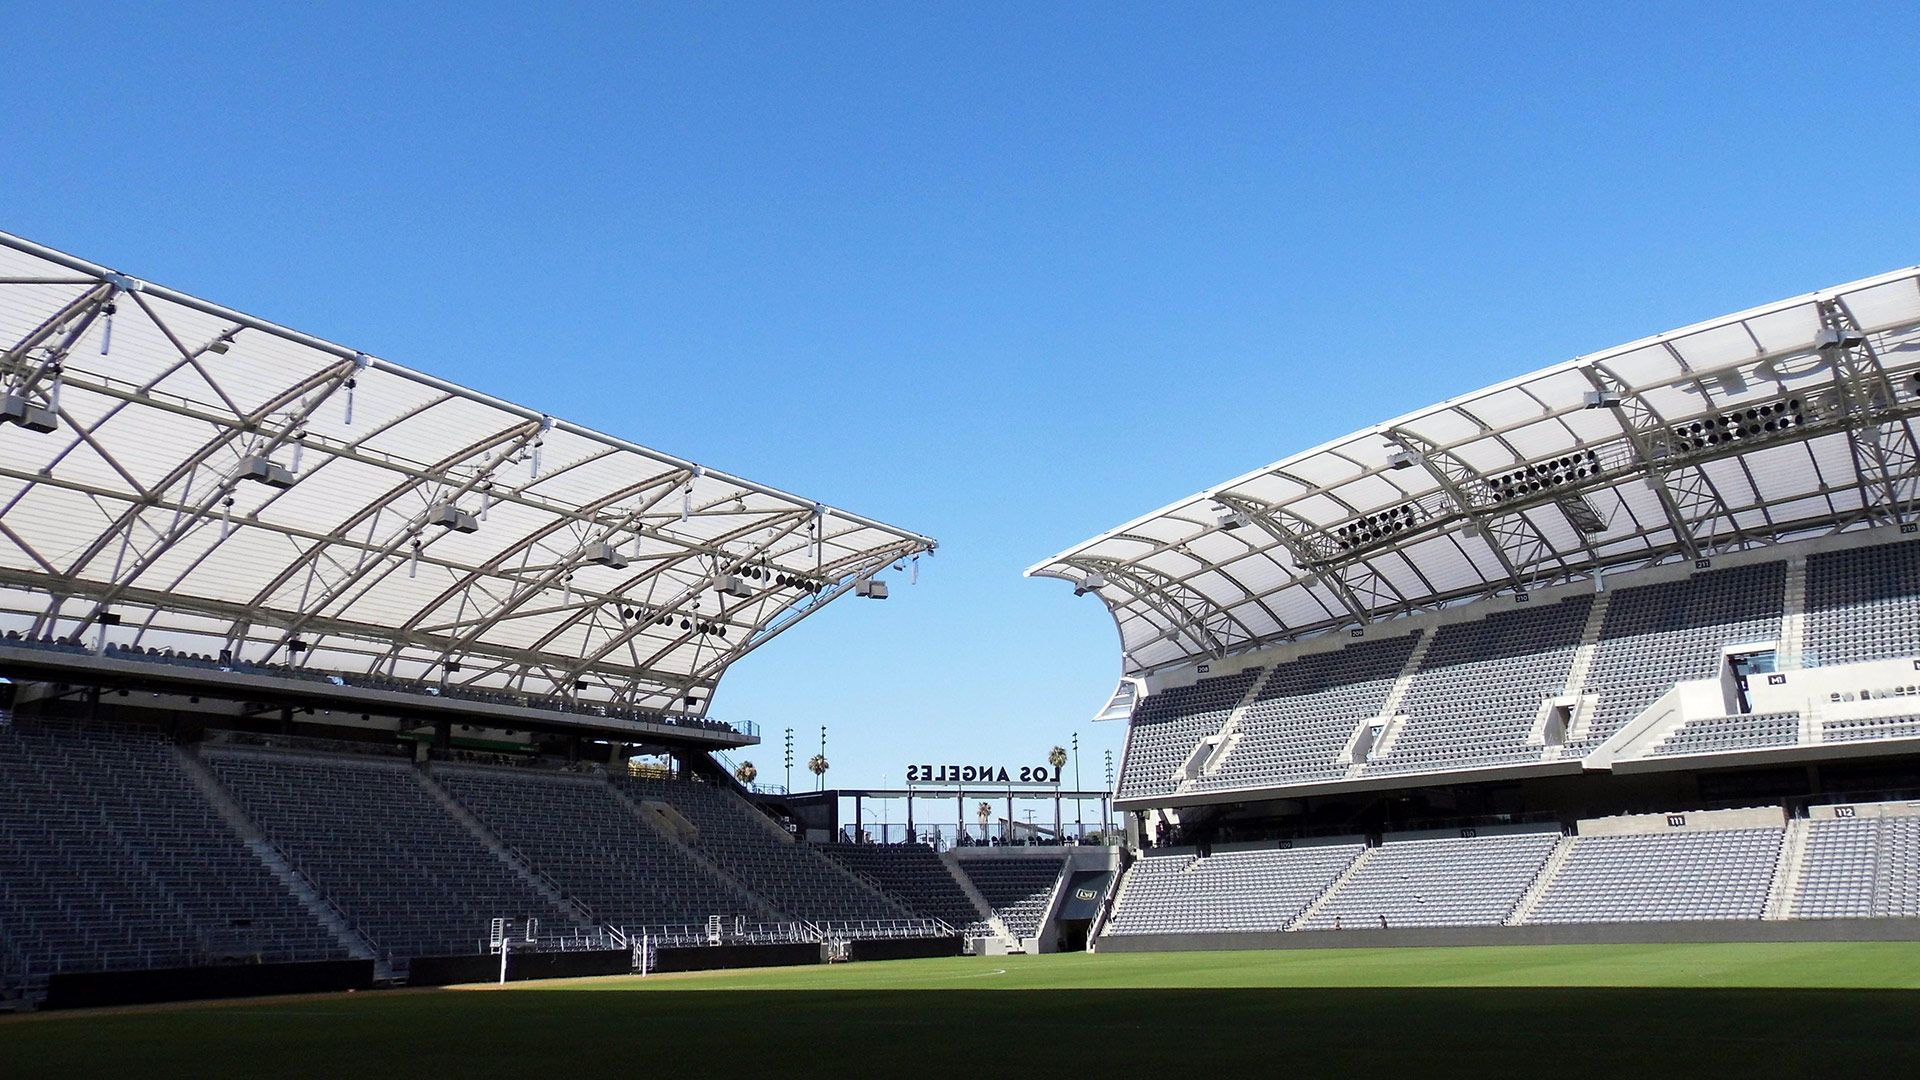 The plastic angel wing-shaped canopy at Banc of California Stadium | Sandi Hemmerlein